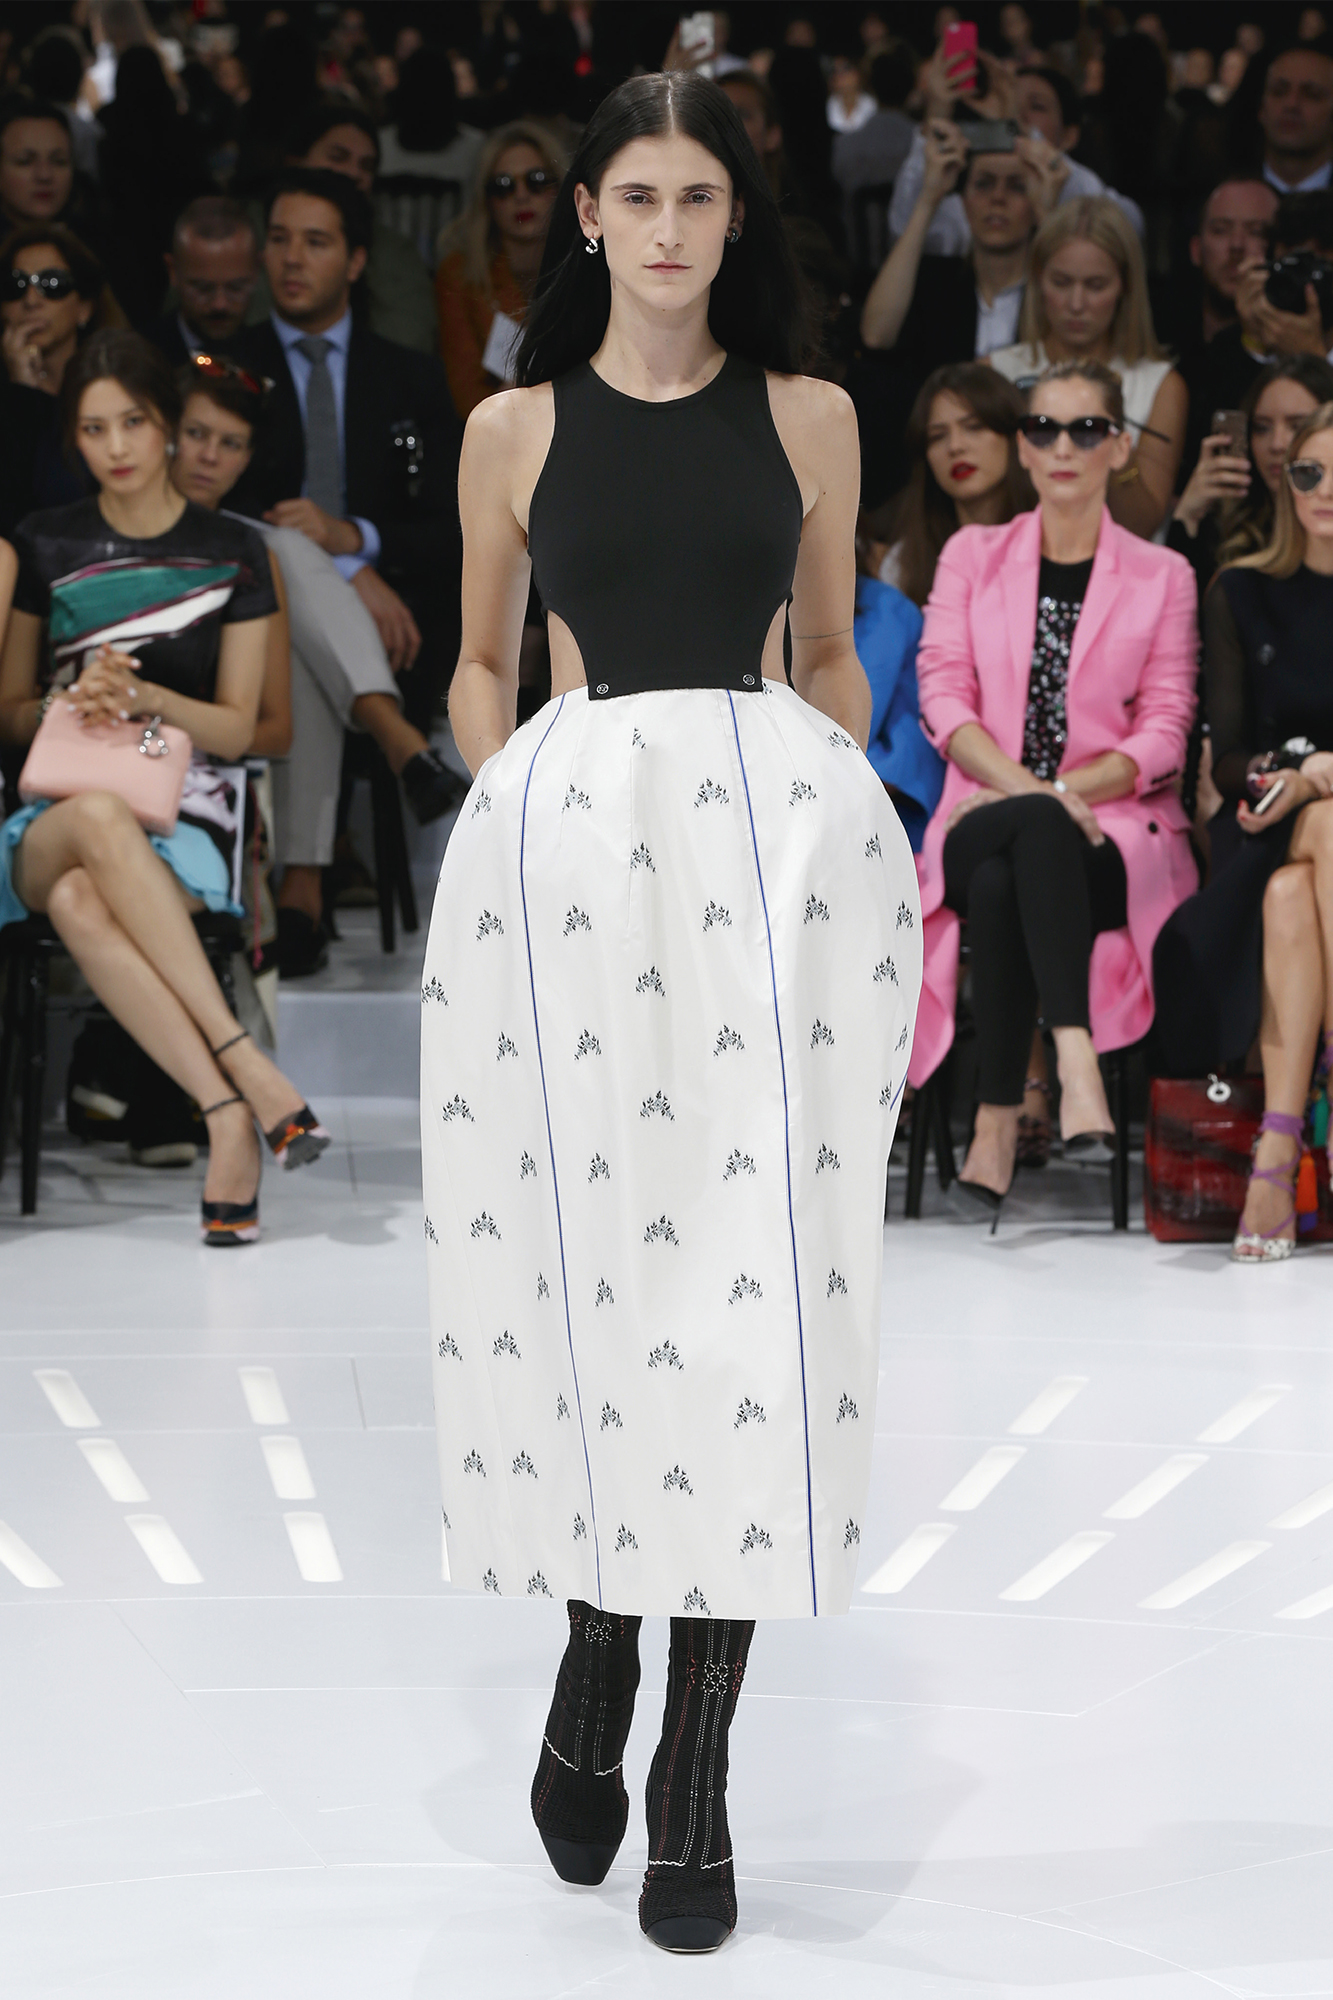 Christian Dior Haute Couture Spring-Summer Ready To Wear Dresses & Accessories Collection 2015-16 (8)